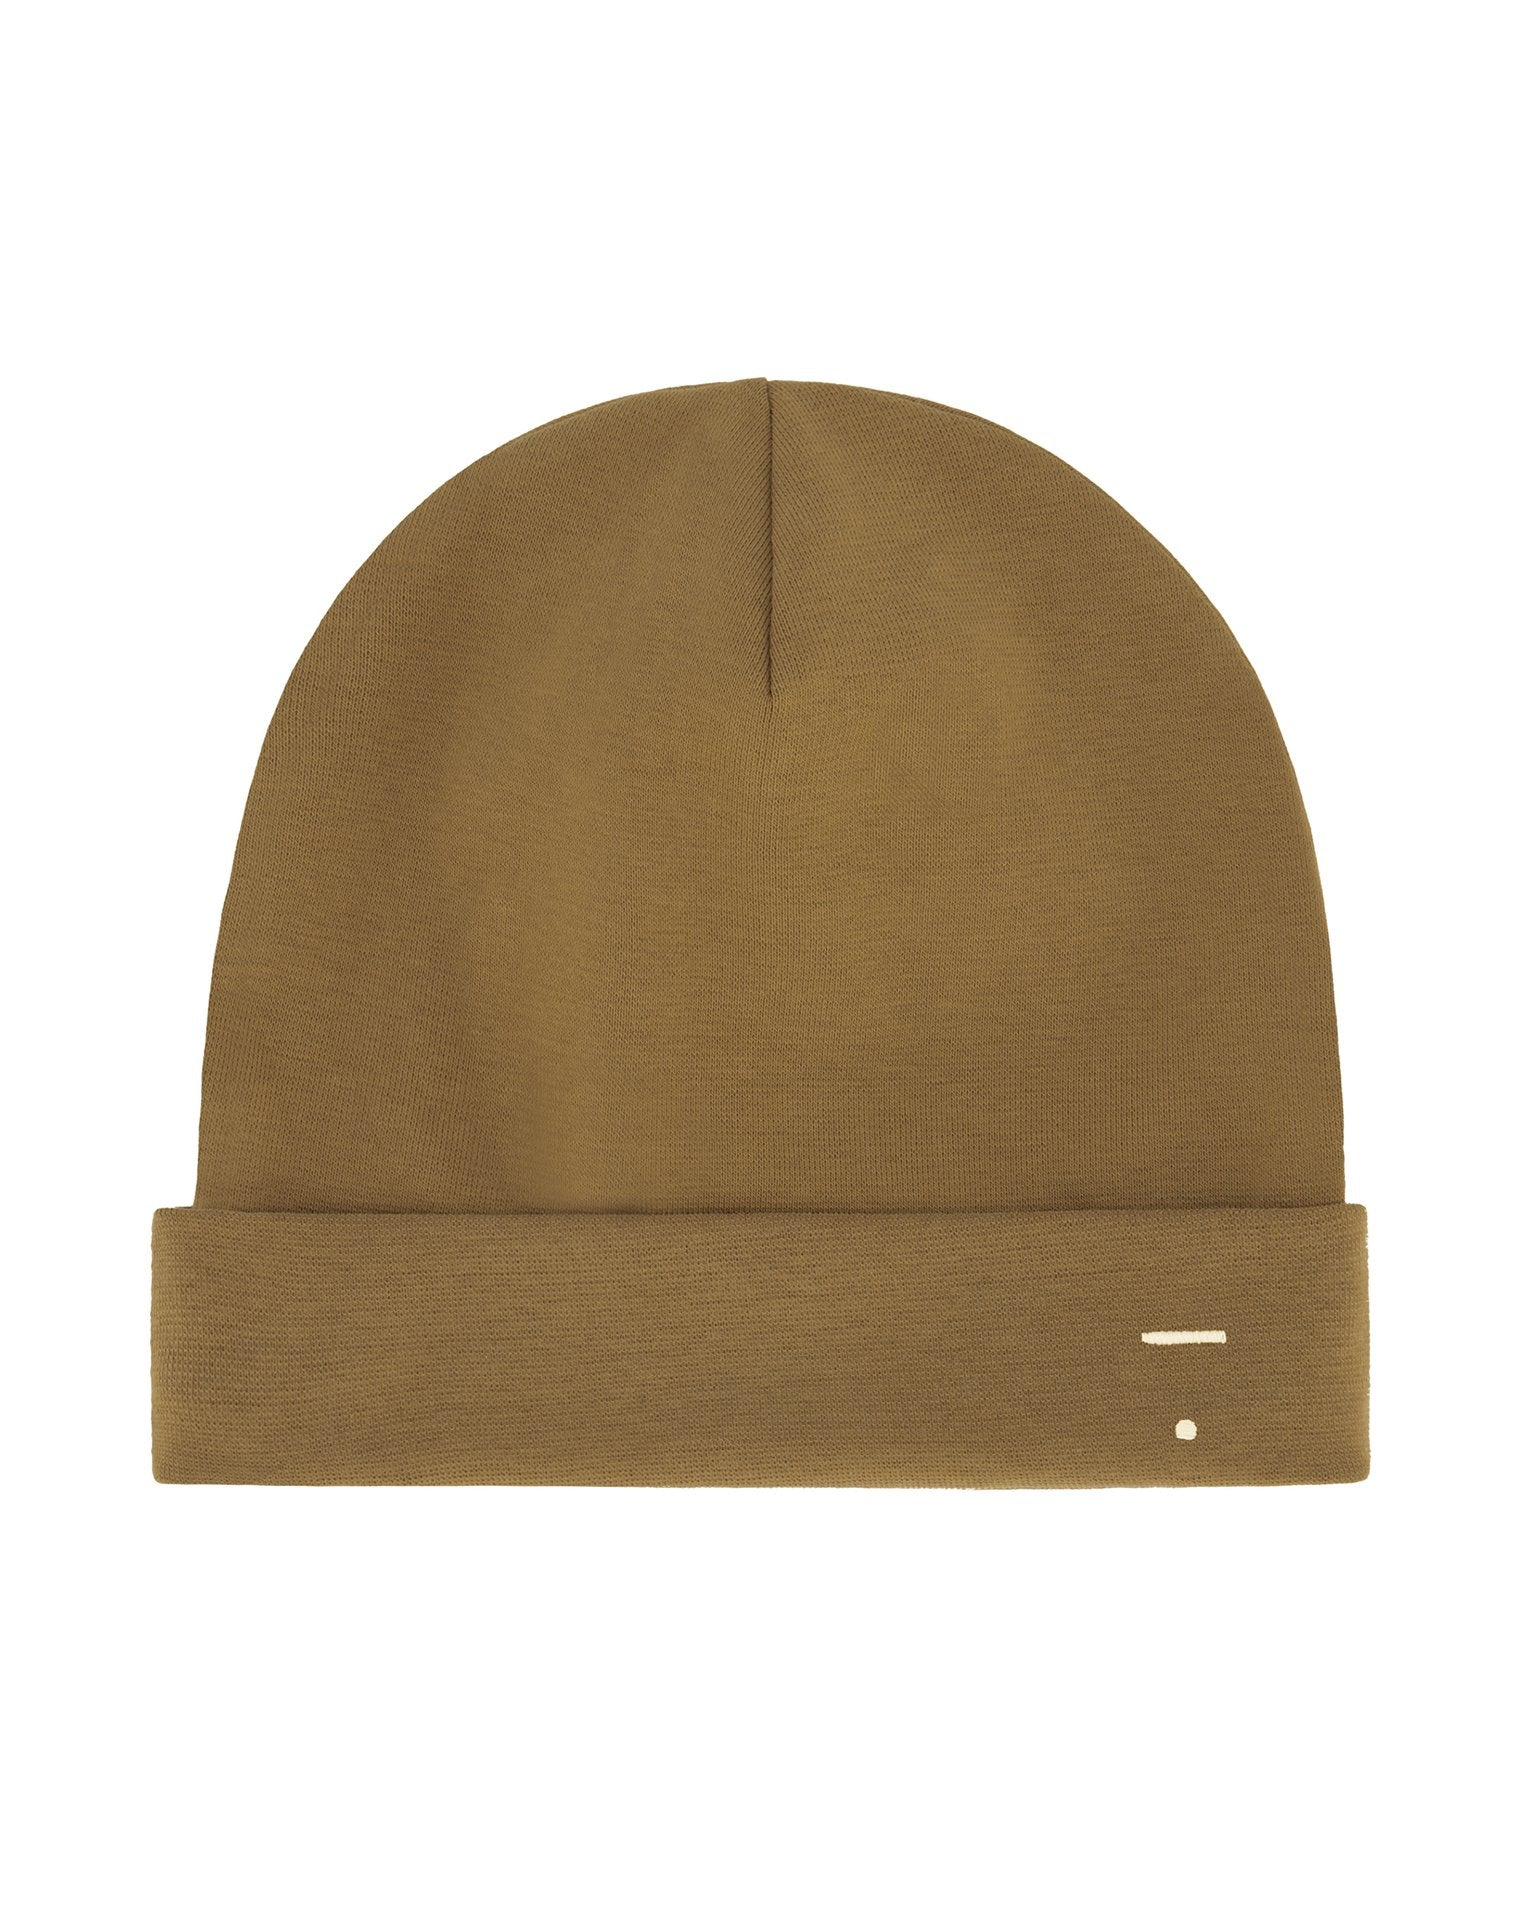 Little gray label accessories 1-4 bonnet in peanut